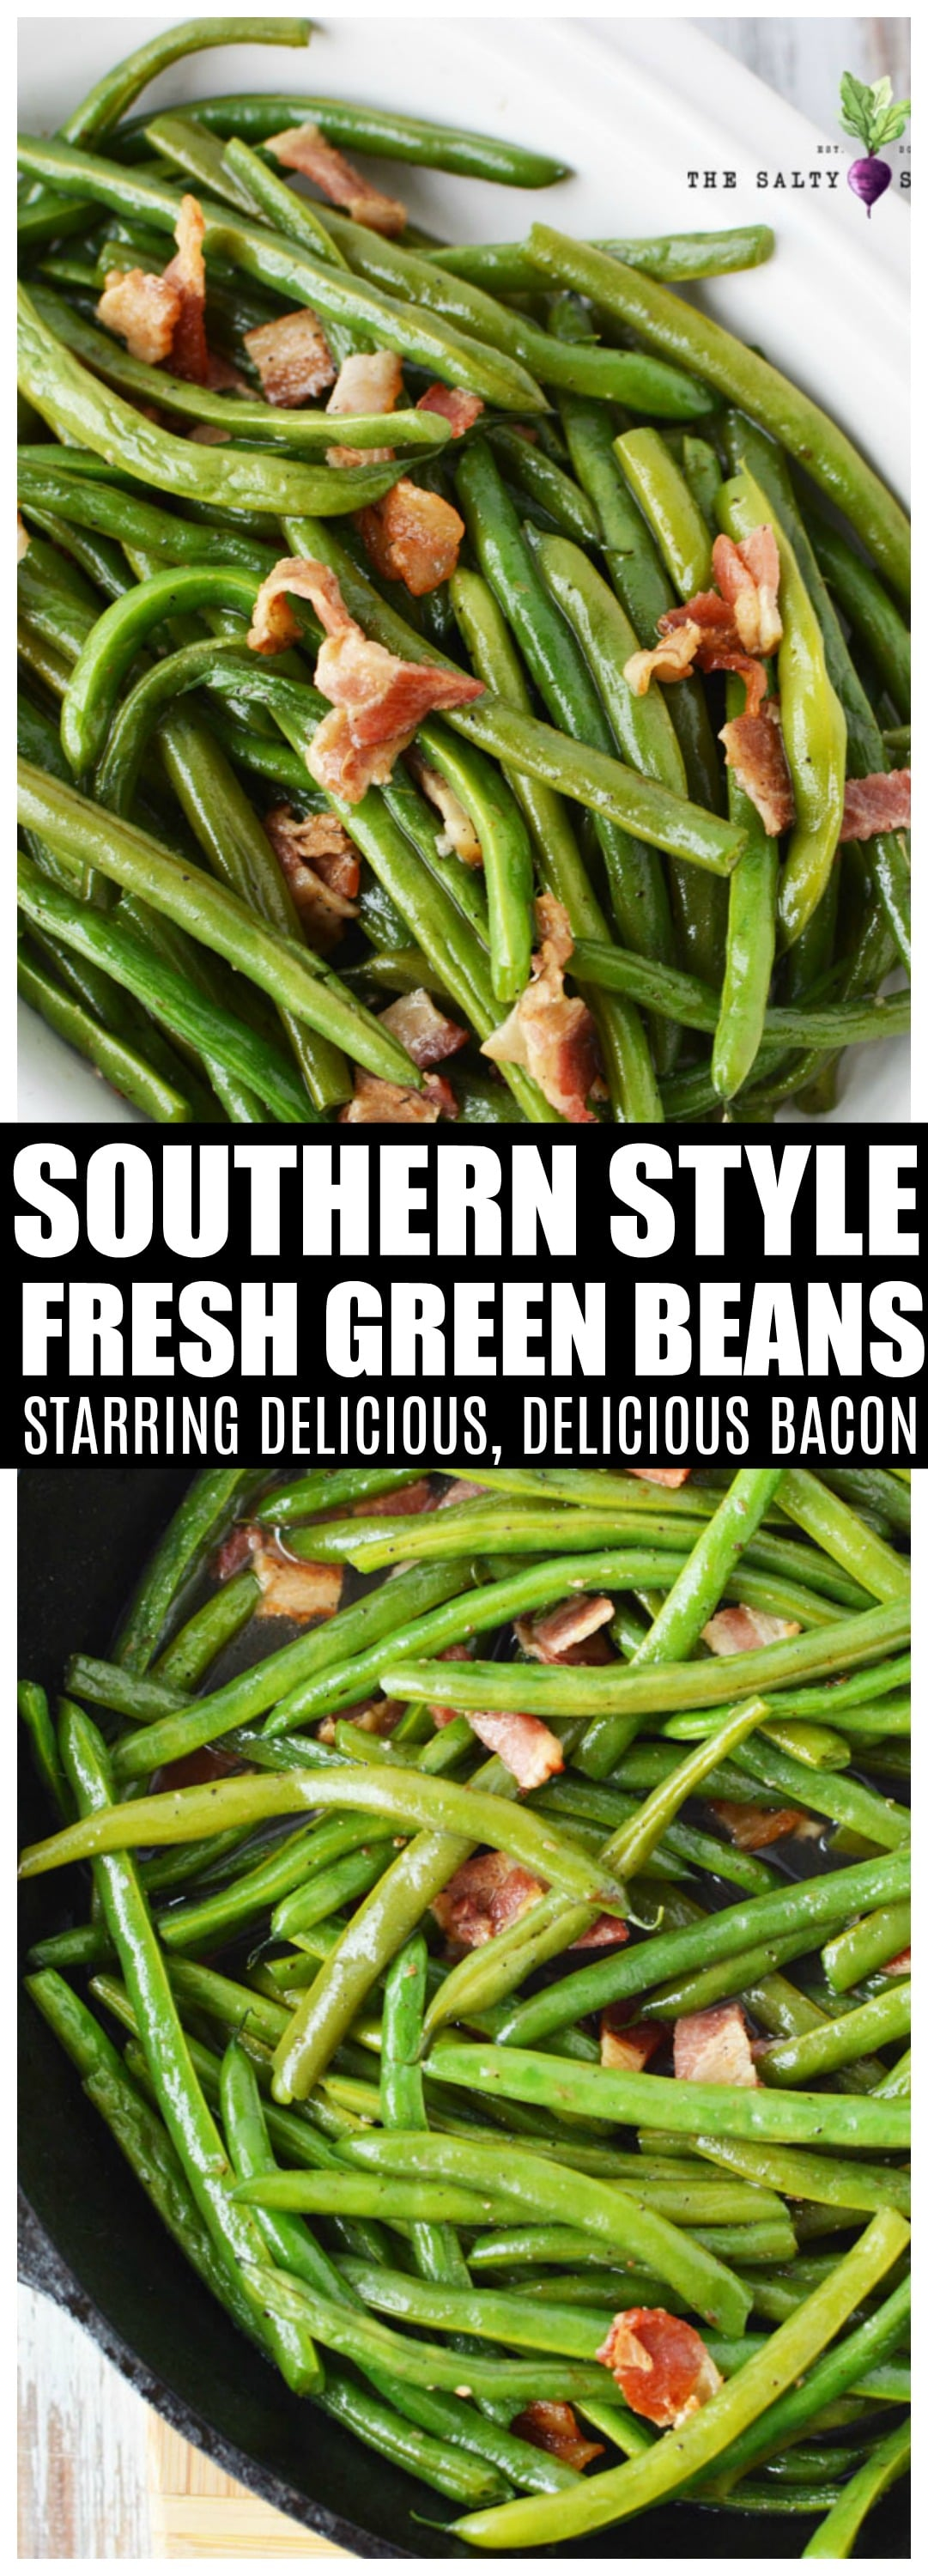 Southern Style Green Beans with fresh green beans and crispy bacon #sidedish #saltysidedish #bacon #greenbeans #holidaysidedish